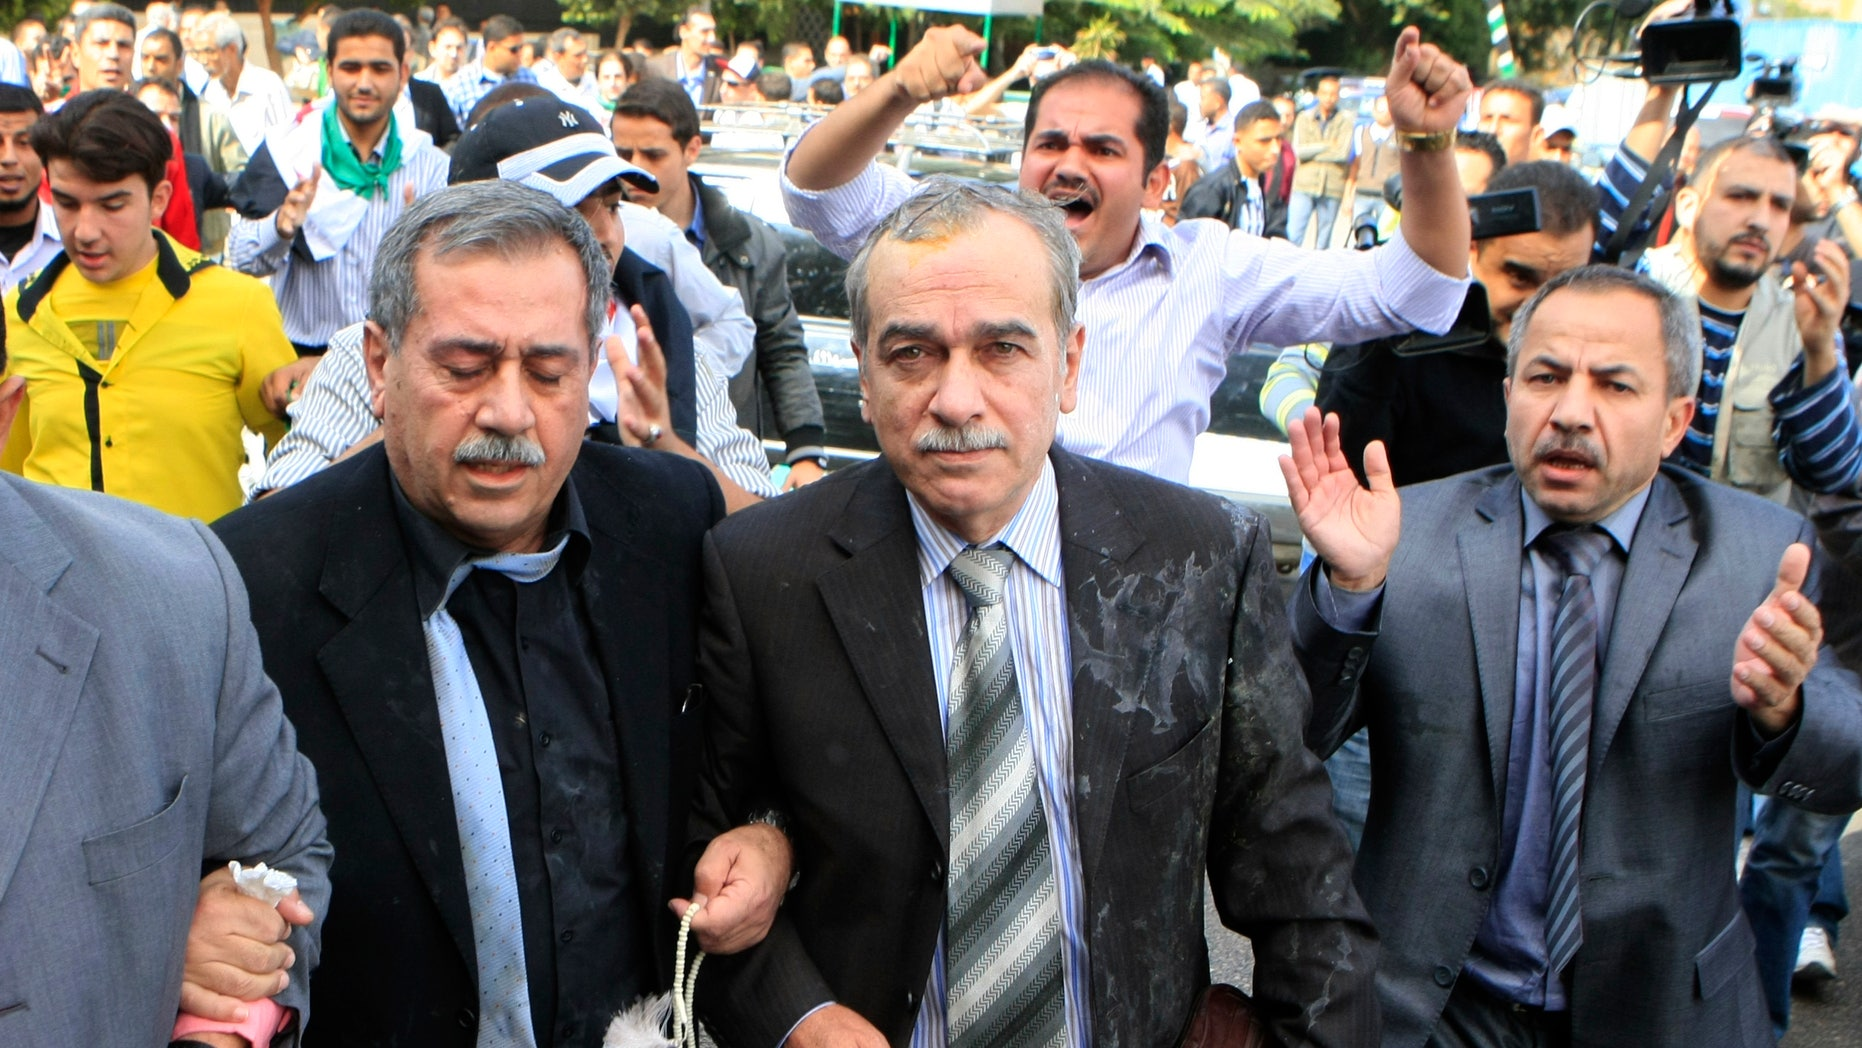 Nov. 9, 2011: Syrian protesters throw eggs toward Abdul-Aziz al-Khair, a member of the Syrian National Coordination Committee, center, and other opposition leaders as they try to enter the Arab League headquarters where they were to hold talks with the organization's chief on violence in Syria, in Cairo, Egypt.